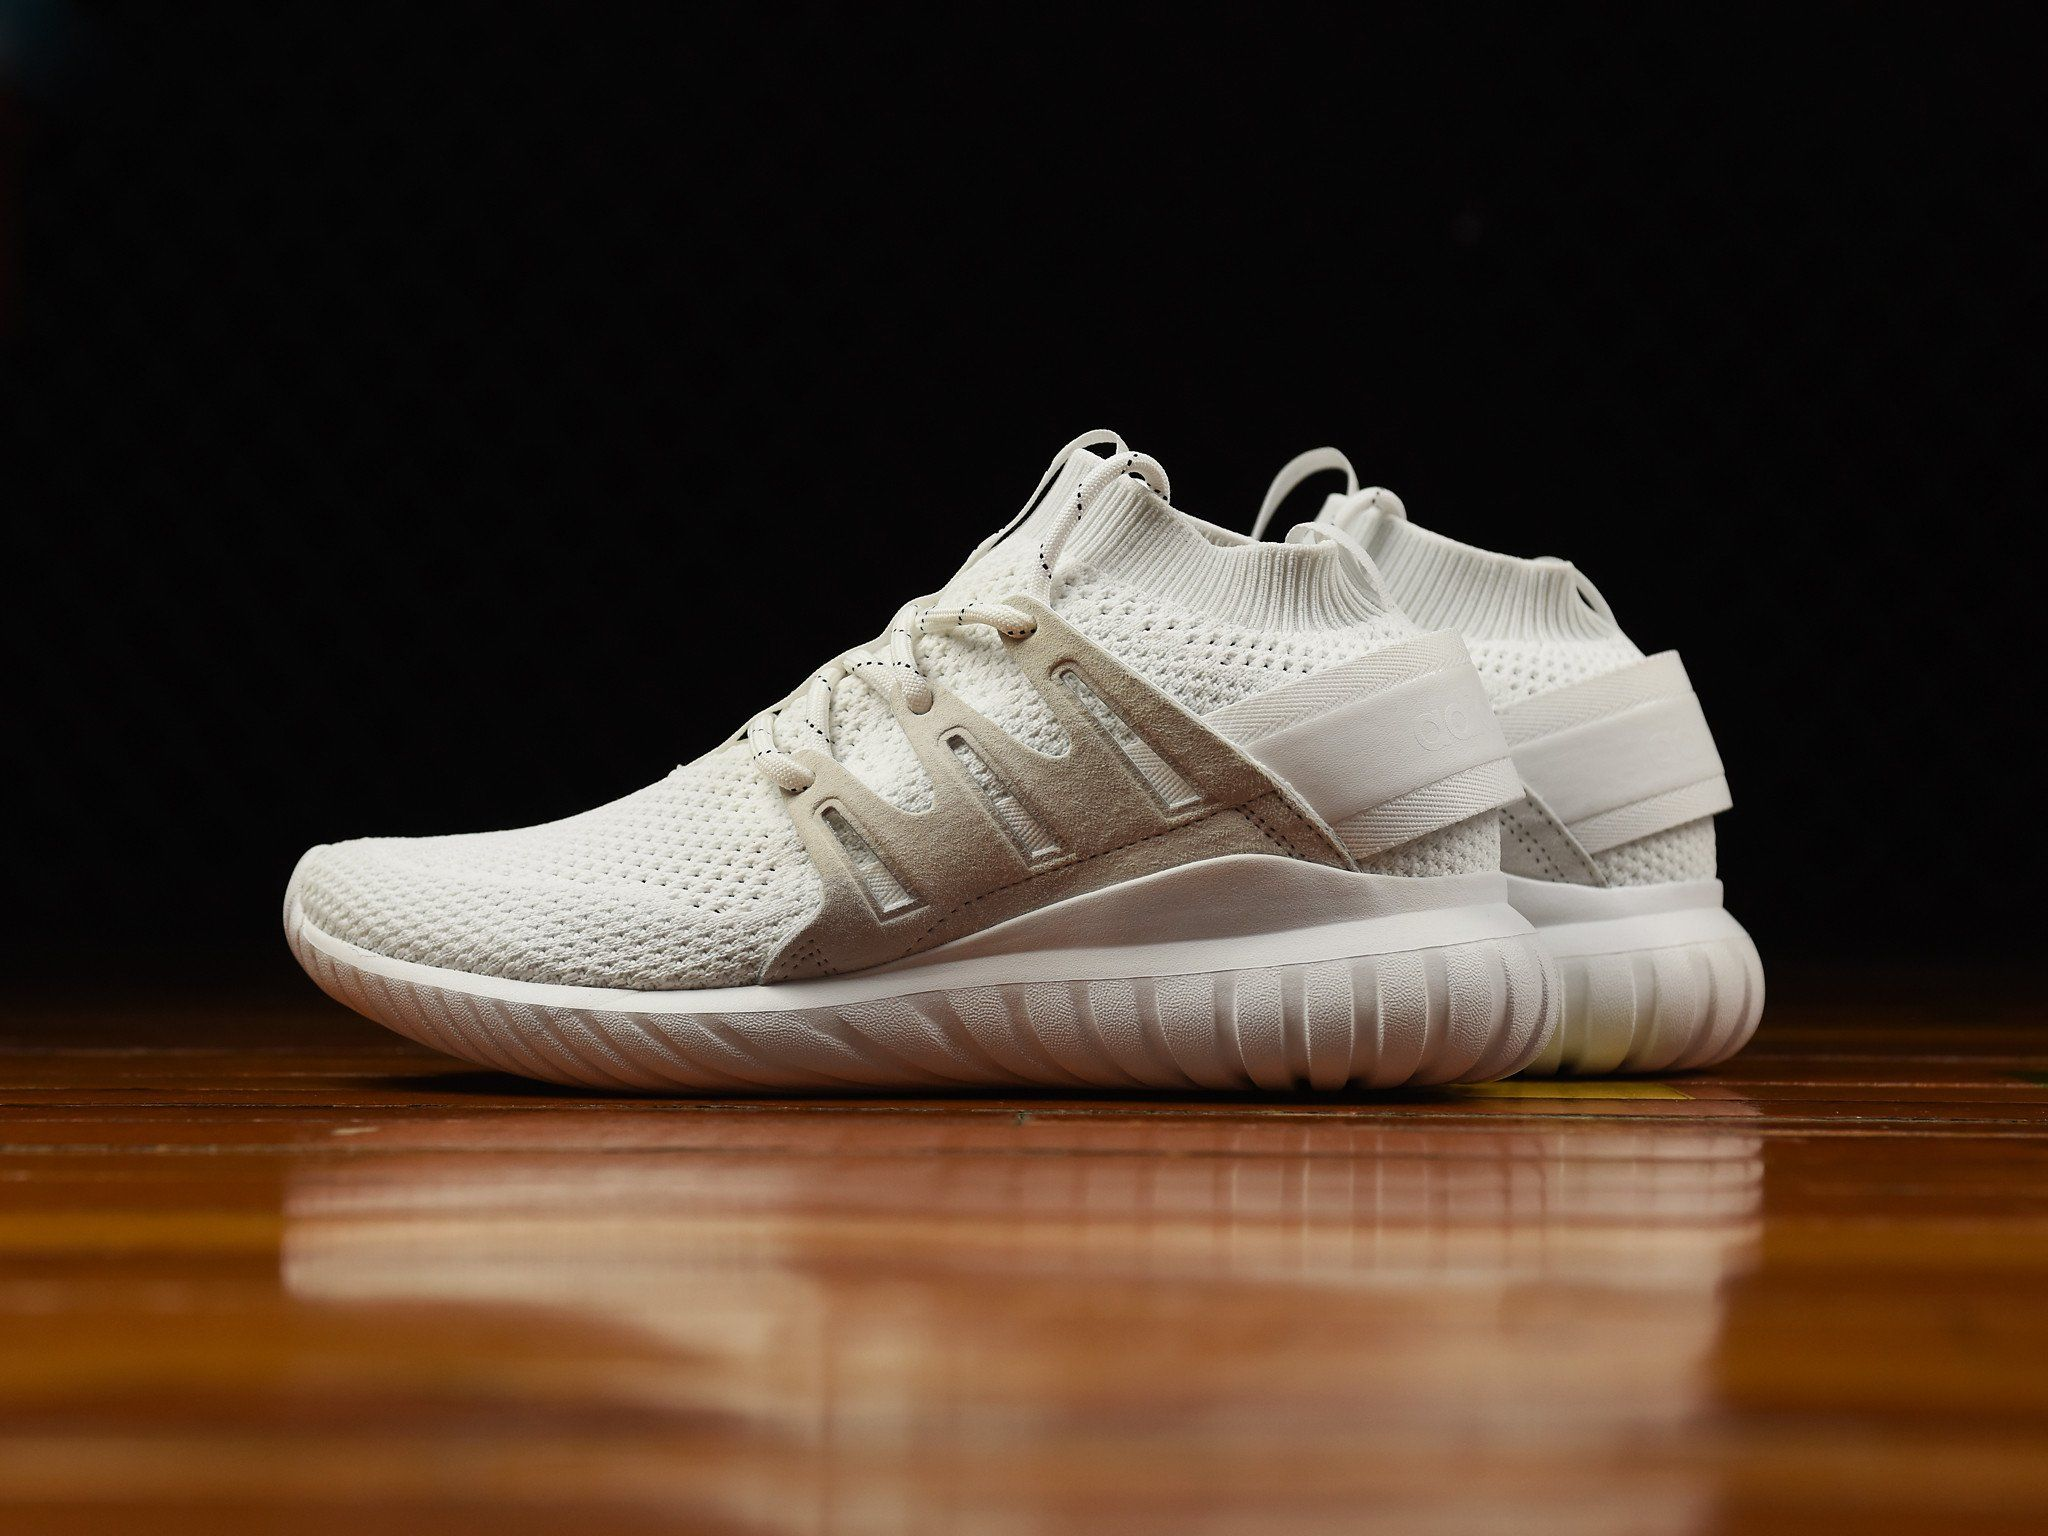 check out 22b96 ad66e Men's Adidas Tubular Nova PrimeKnit [S80106] | Adidas ...